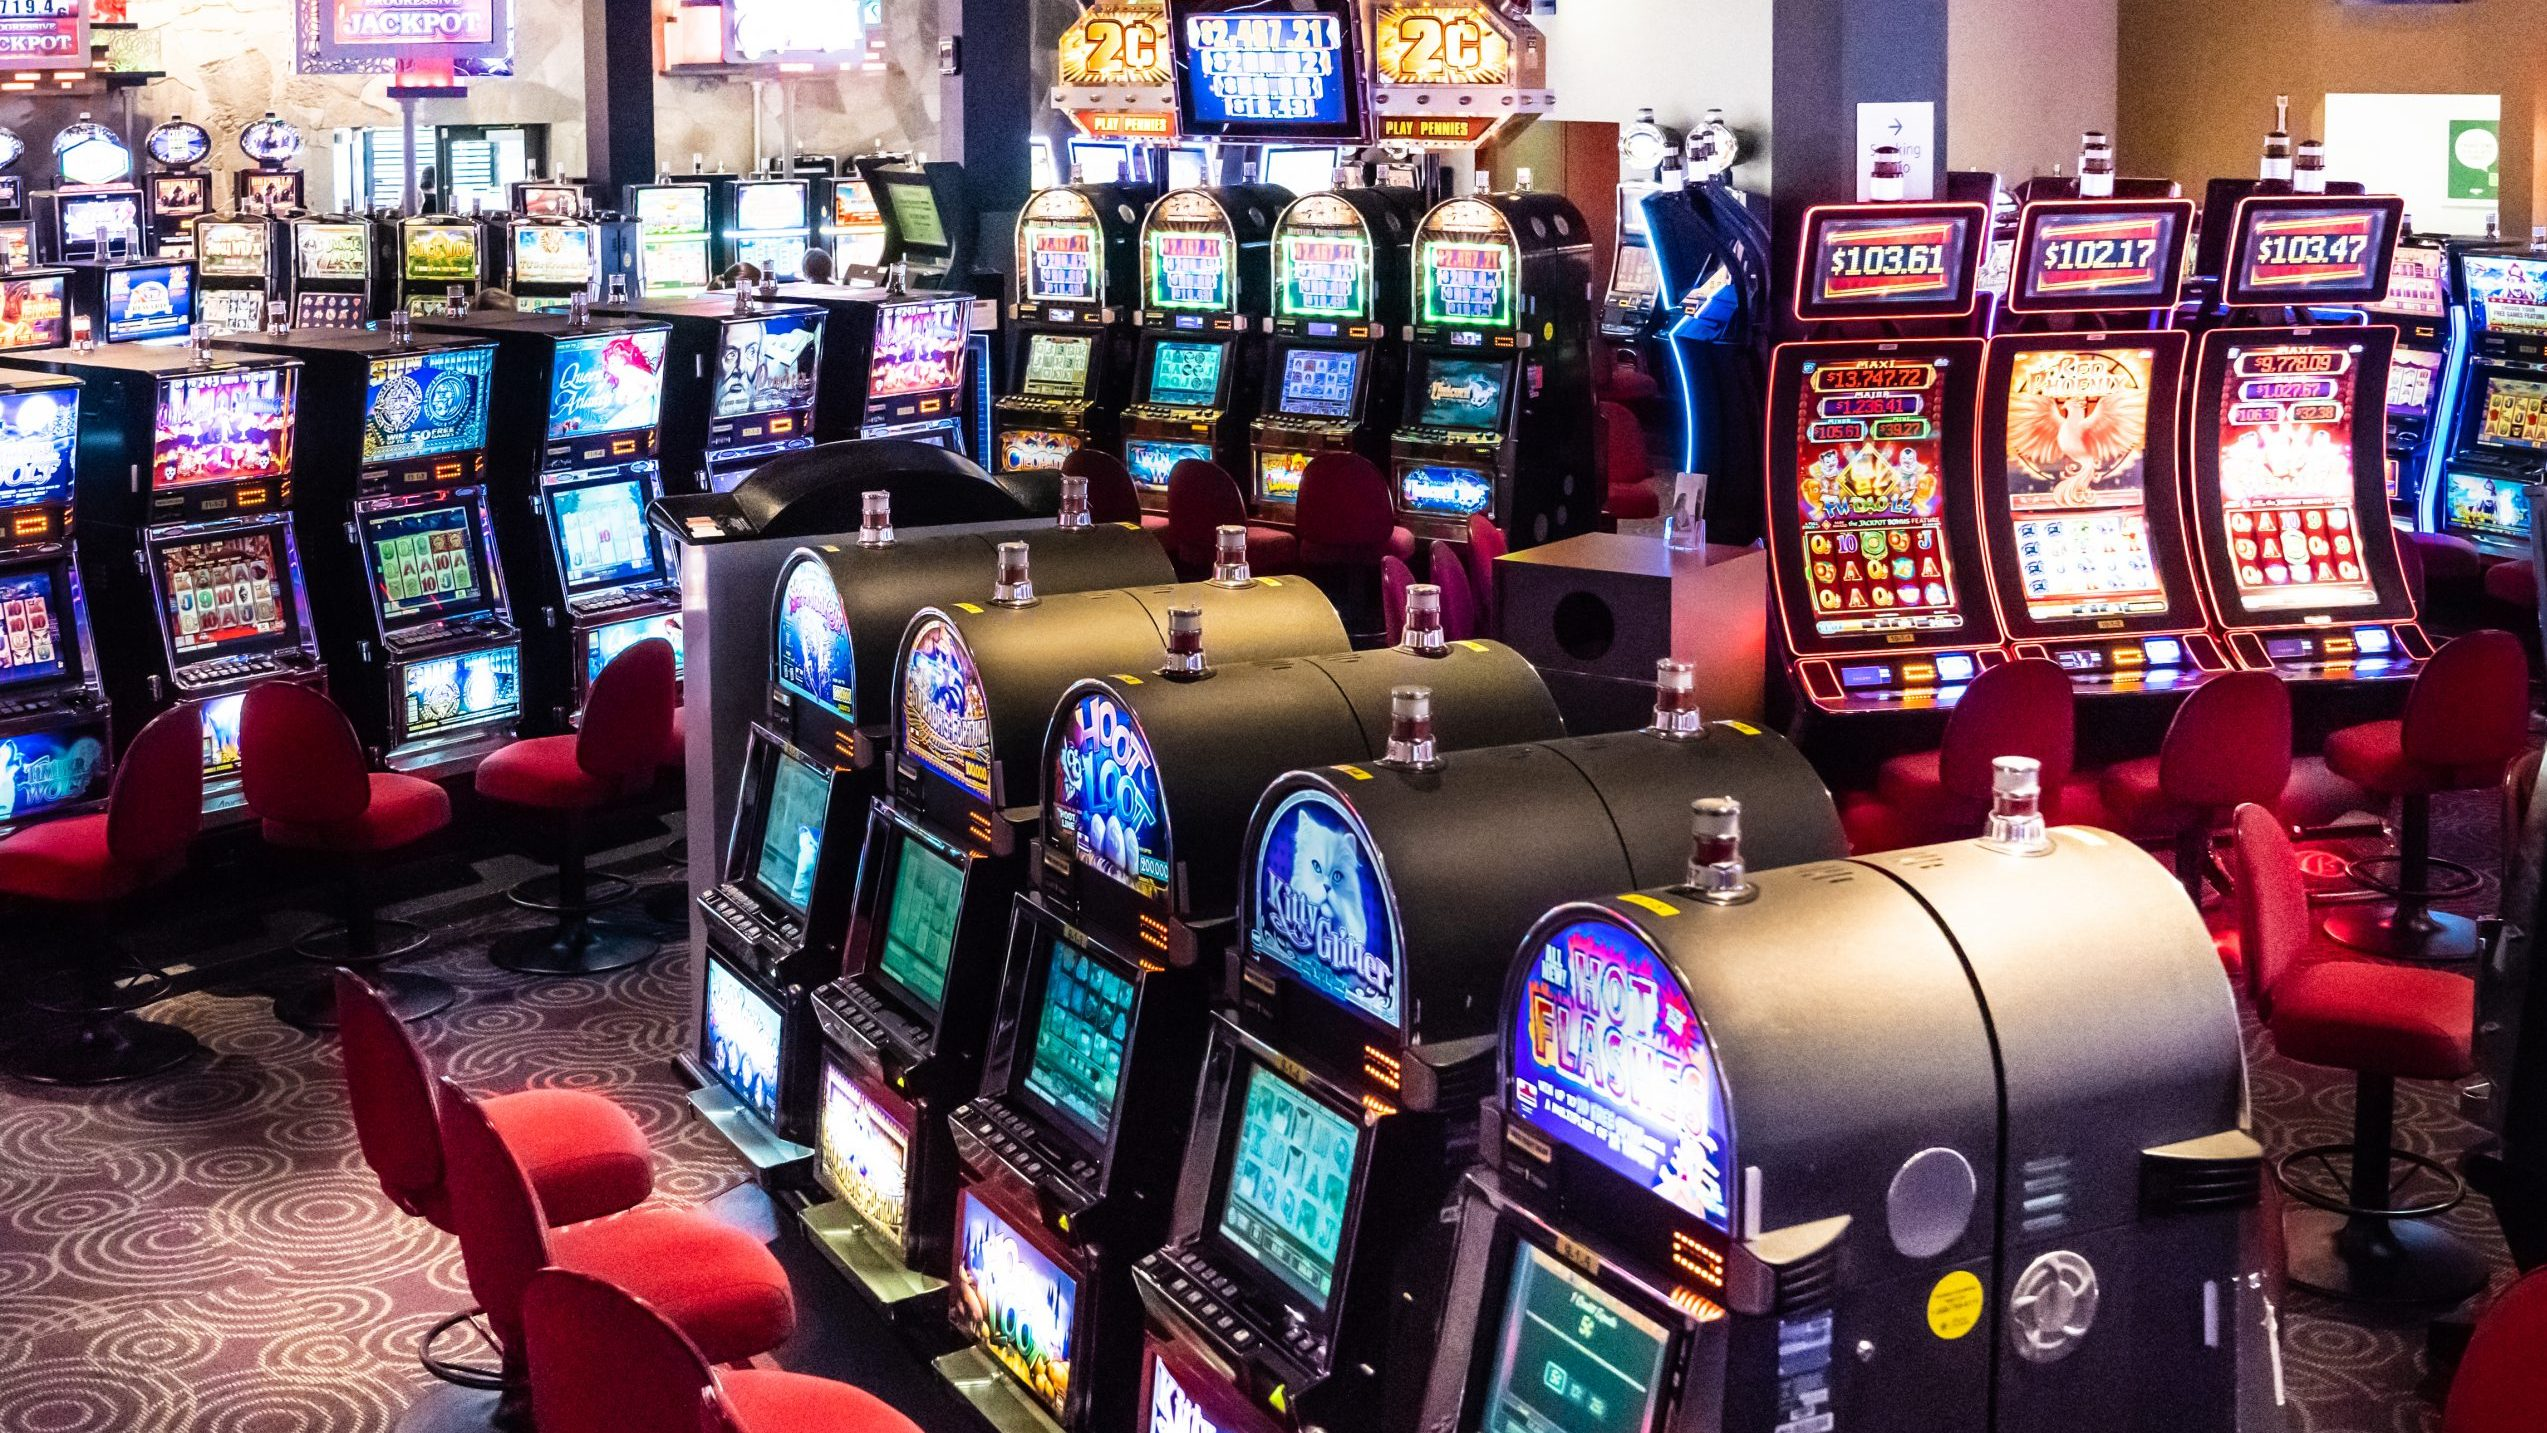 GATEWAY CASINOS & ENTERTAINMENT TO REOPEN ONTARIO CASINOS ON JULY 16th